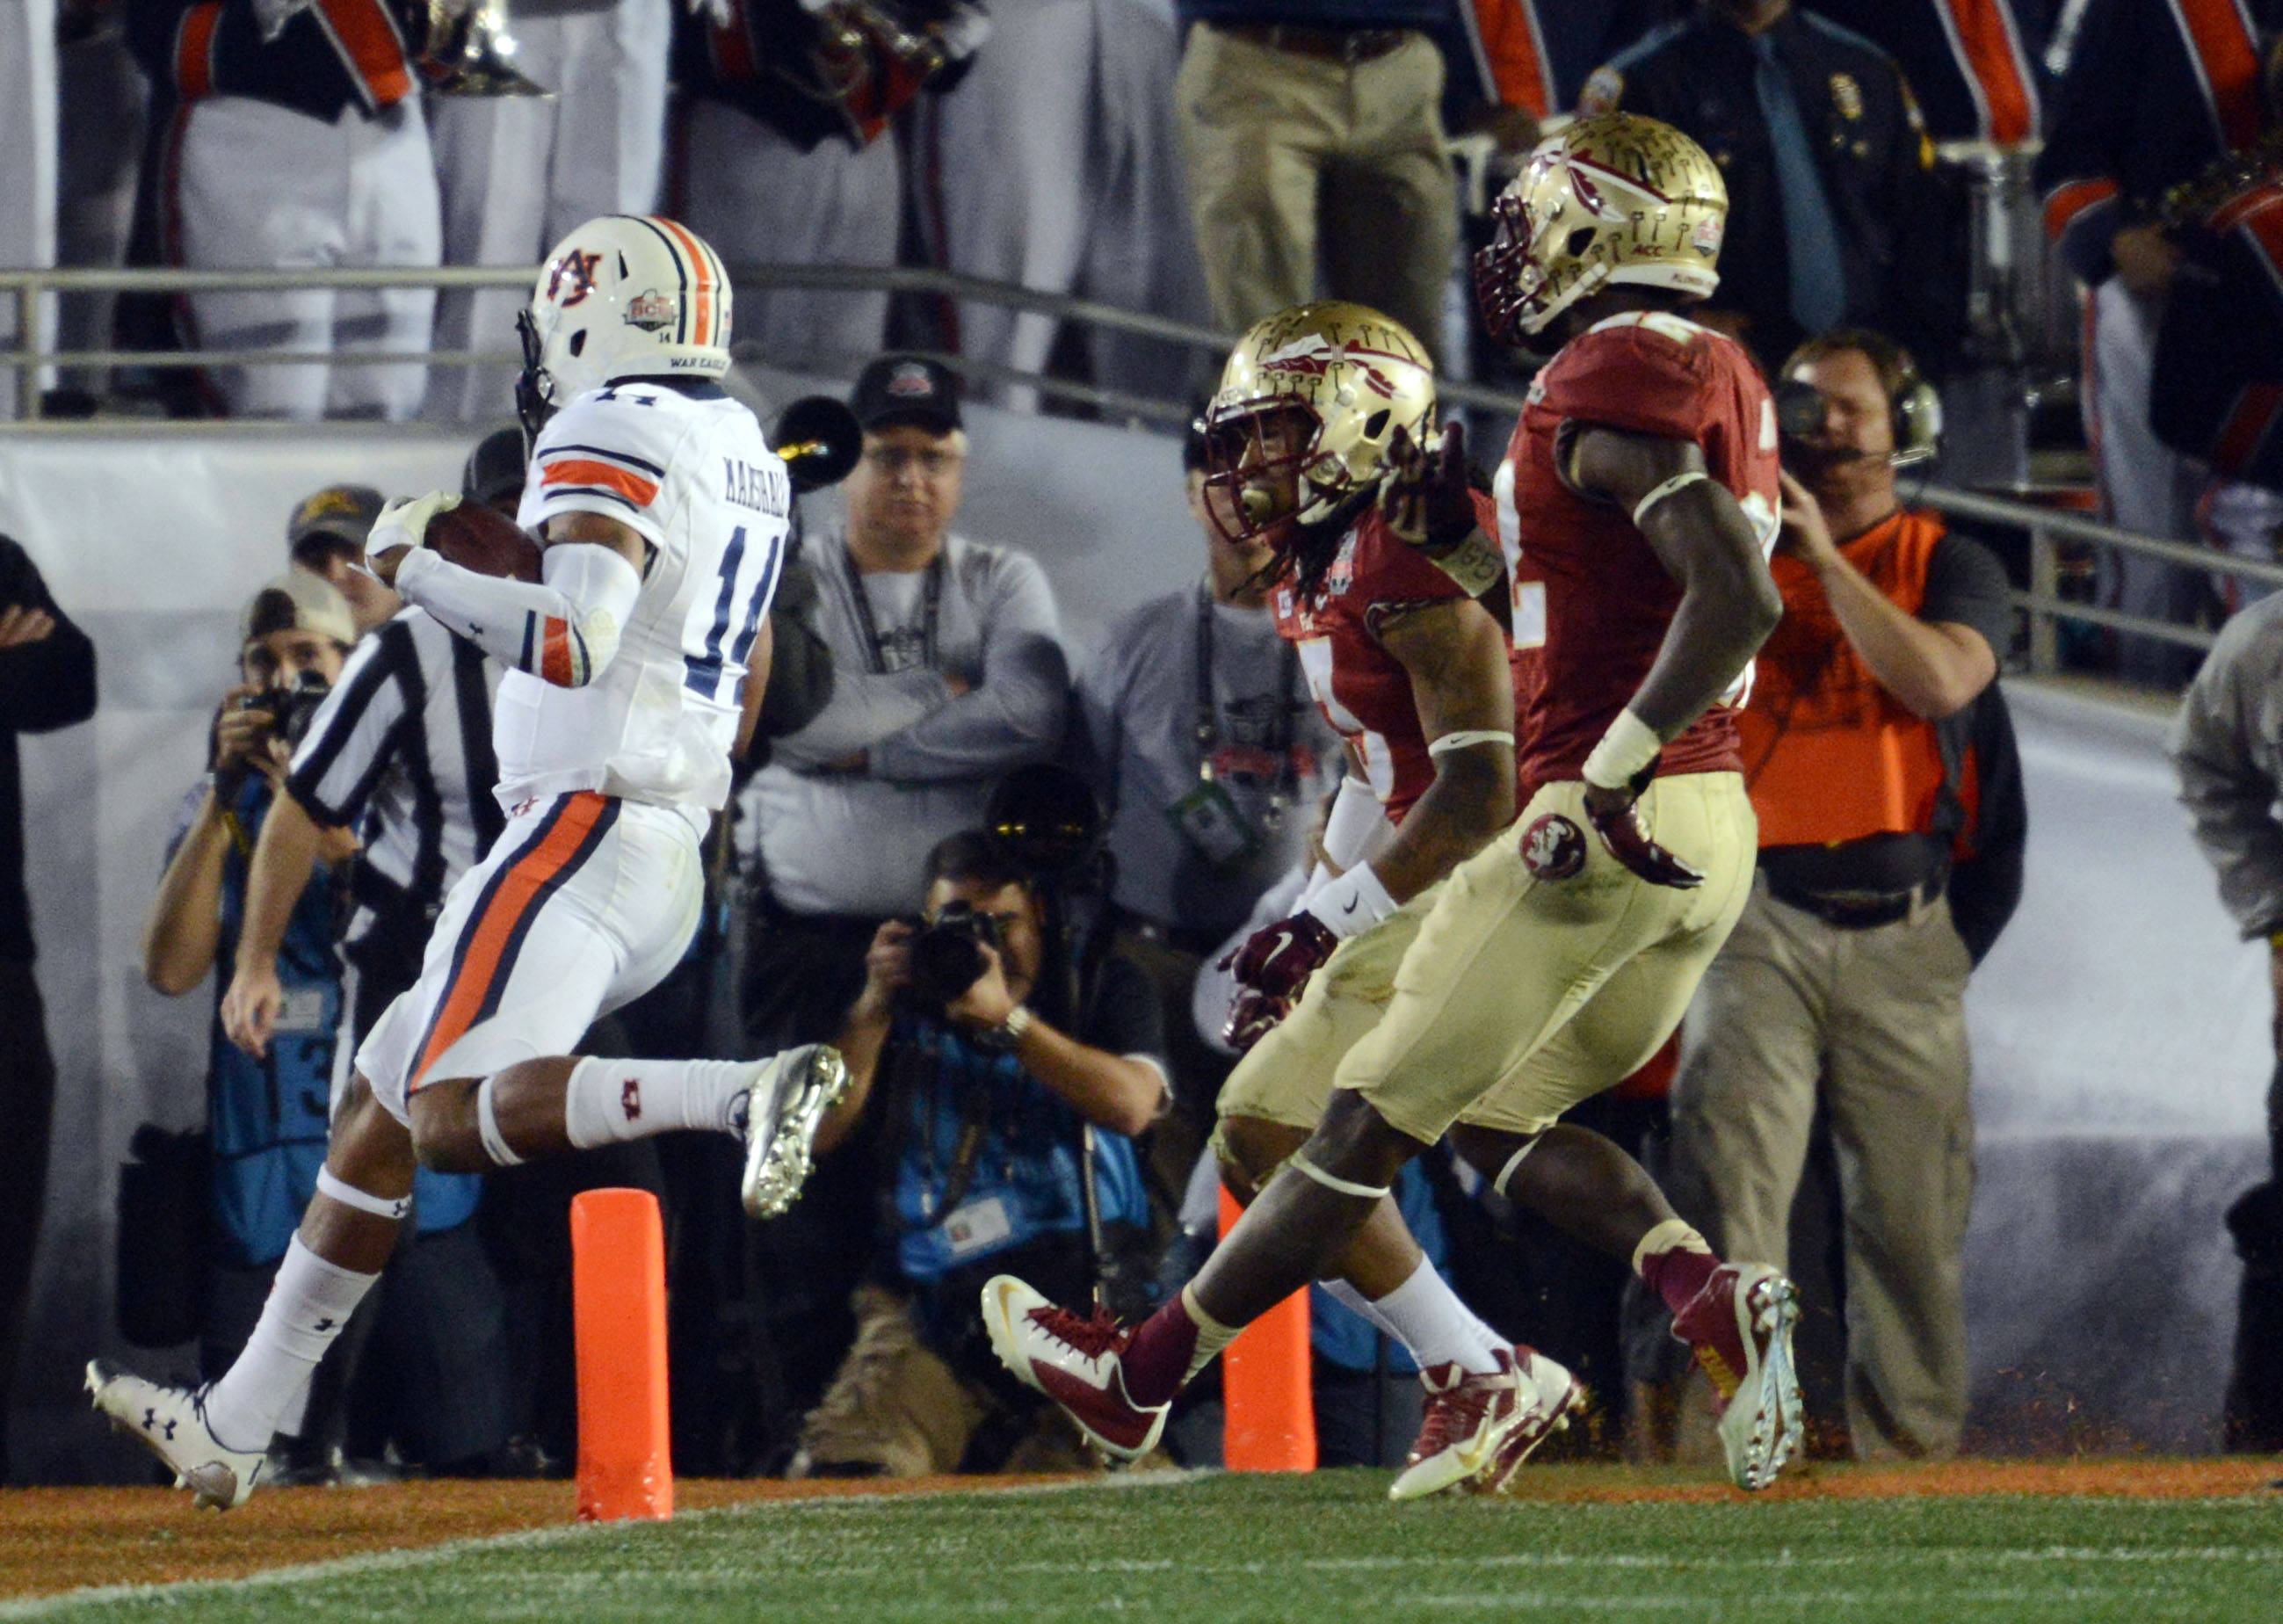 Jan 6, 2014; Pasadena, CA, USA; Auburn Tigers quarterback Nick Marshall (14) scores a touchdown against the Florida State Seminoles during the first half of the 2014 BCS National Championship game at the Rose Bowl.  Mandatory Credit: Jayne Kamin-Oncea-USA TODAY Sports